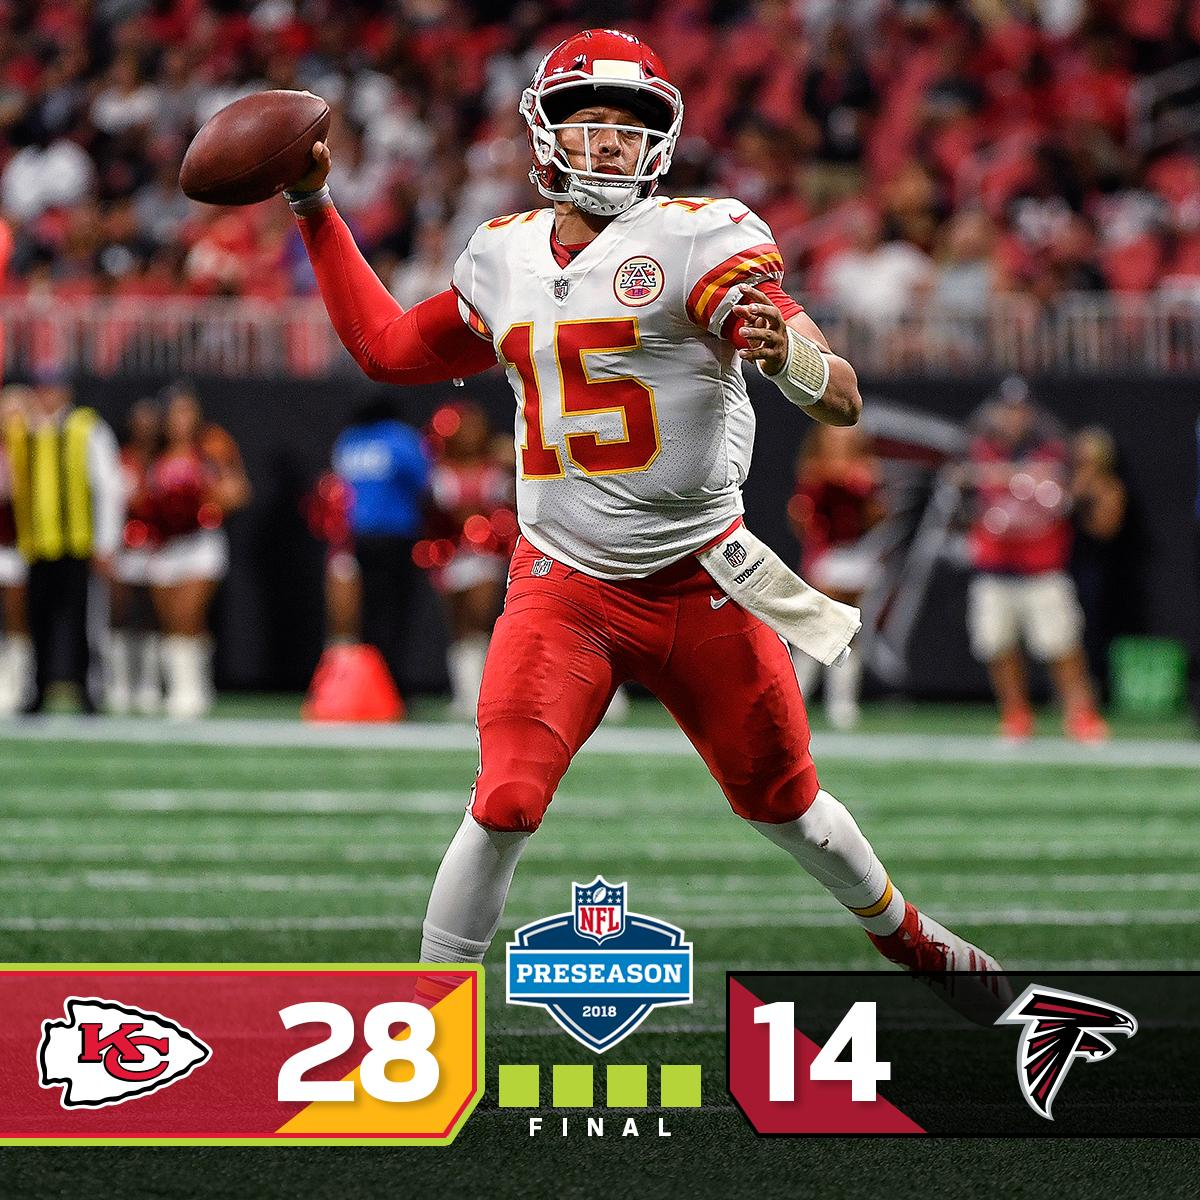 FINAL: The @Chiefs WIN in Atlanta! #KCvsATL https://t.co/1TdiEWkwF6